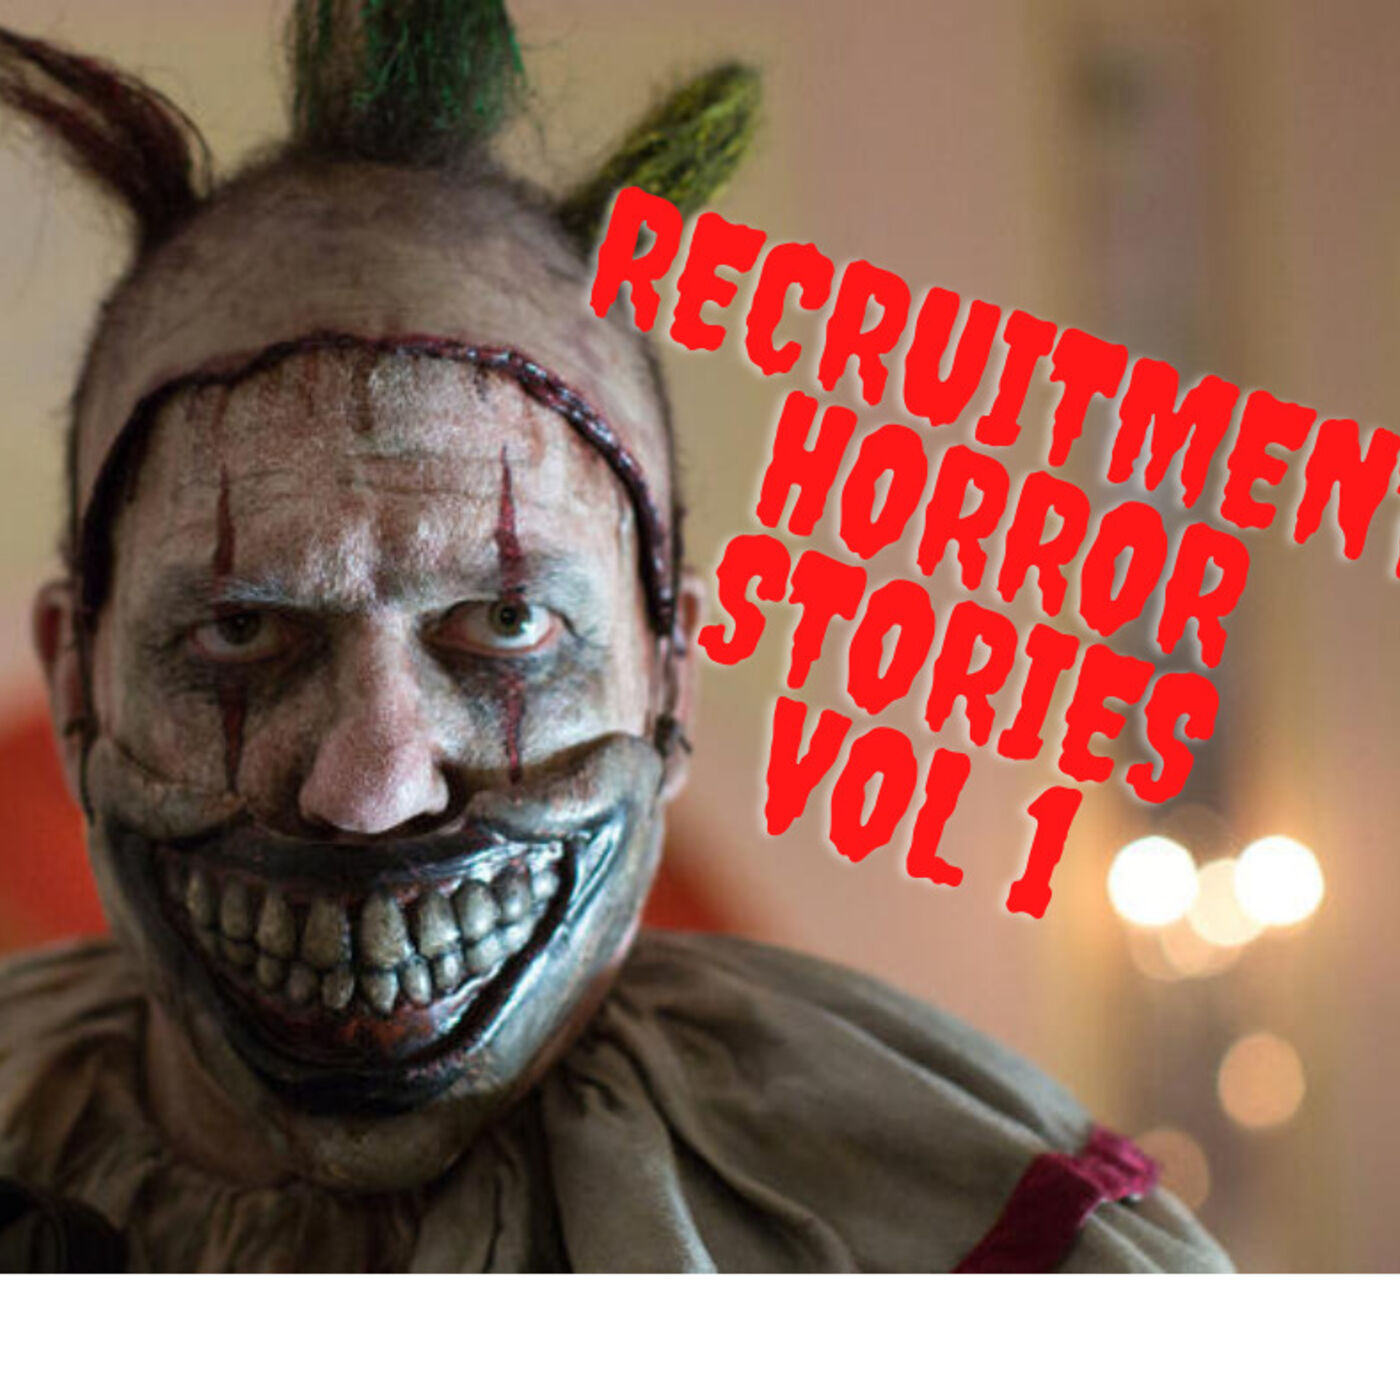 Episode 104 - Recruitment Horror Stories - You are not alone...